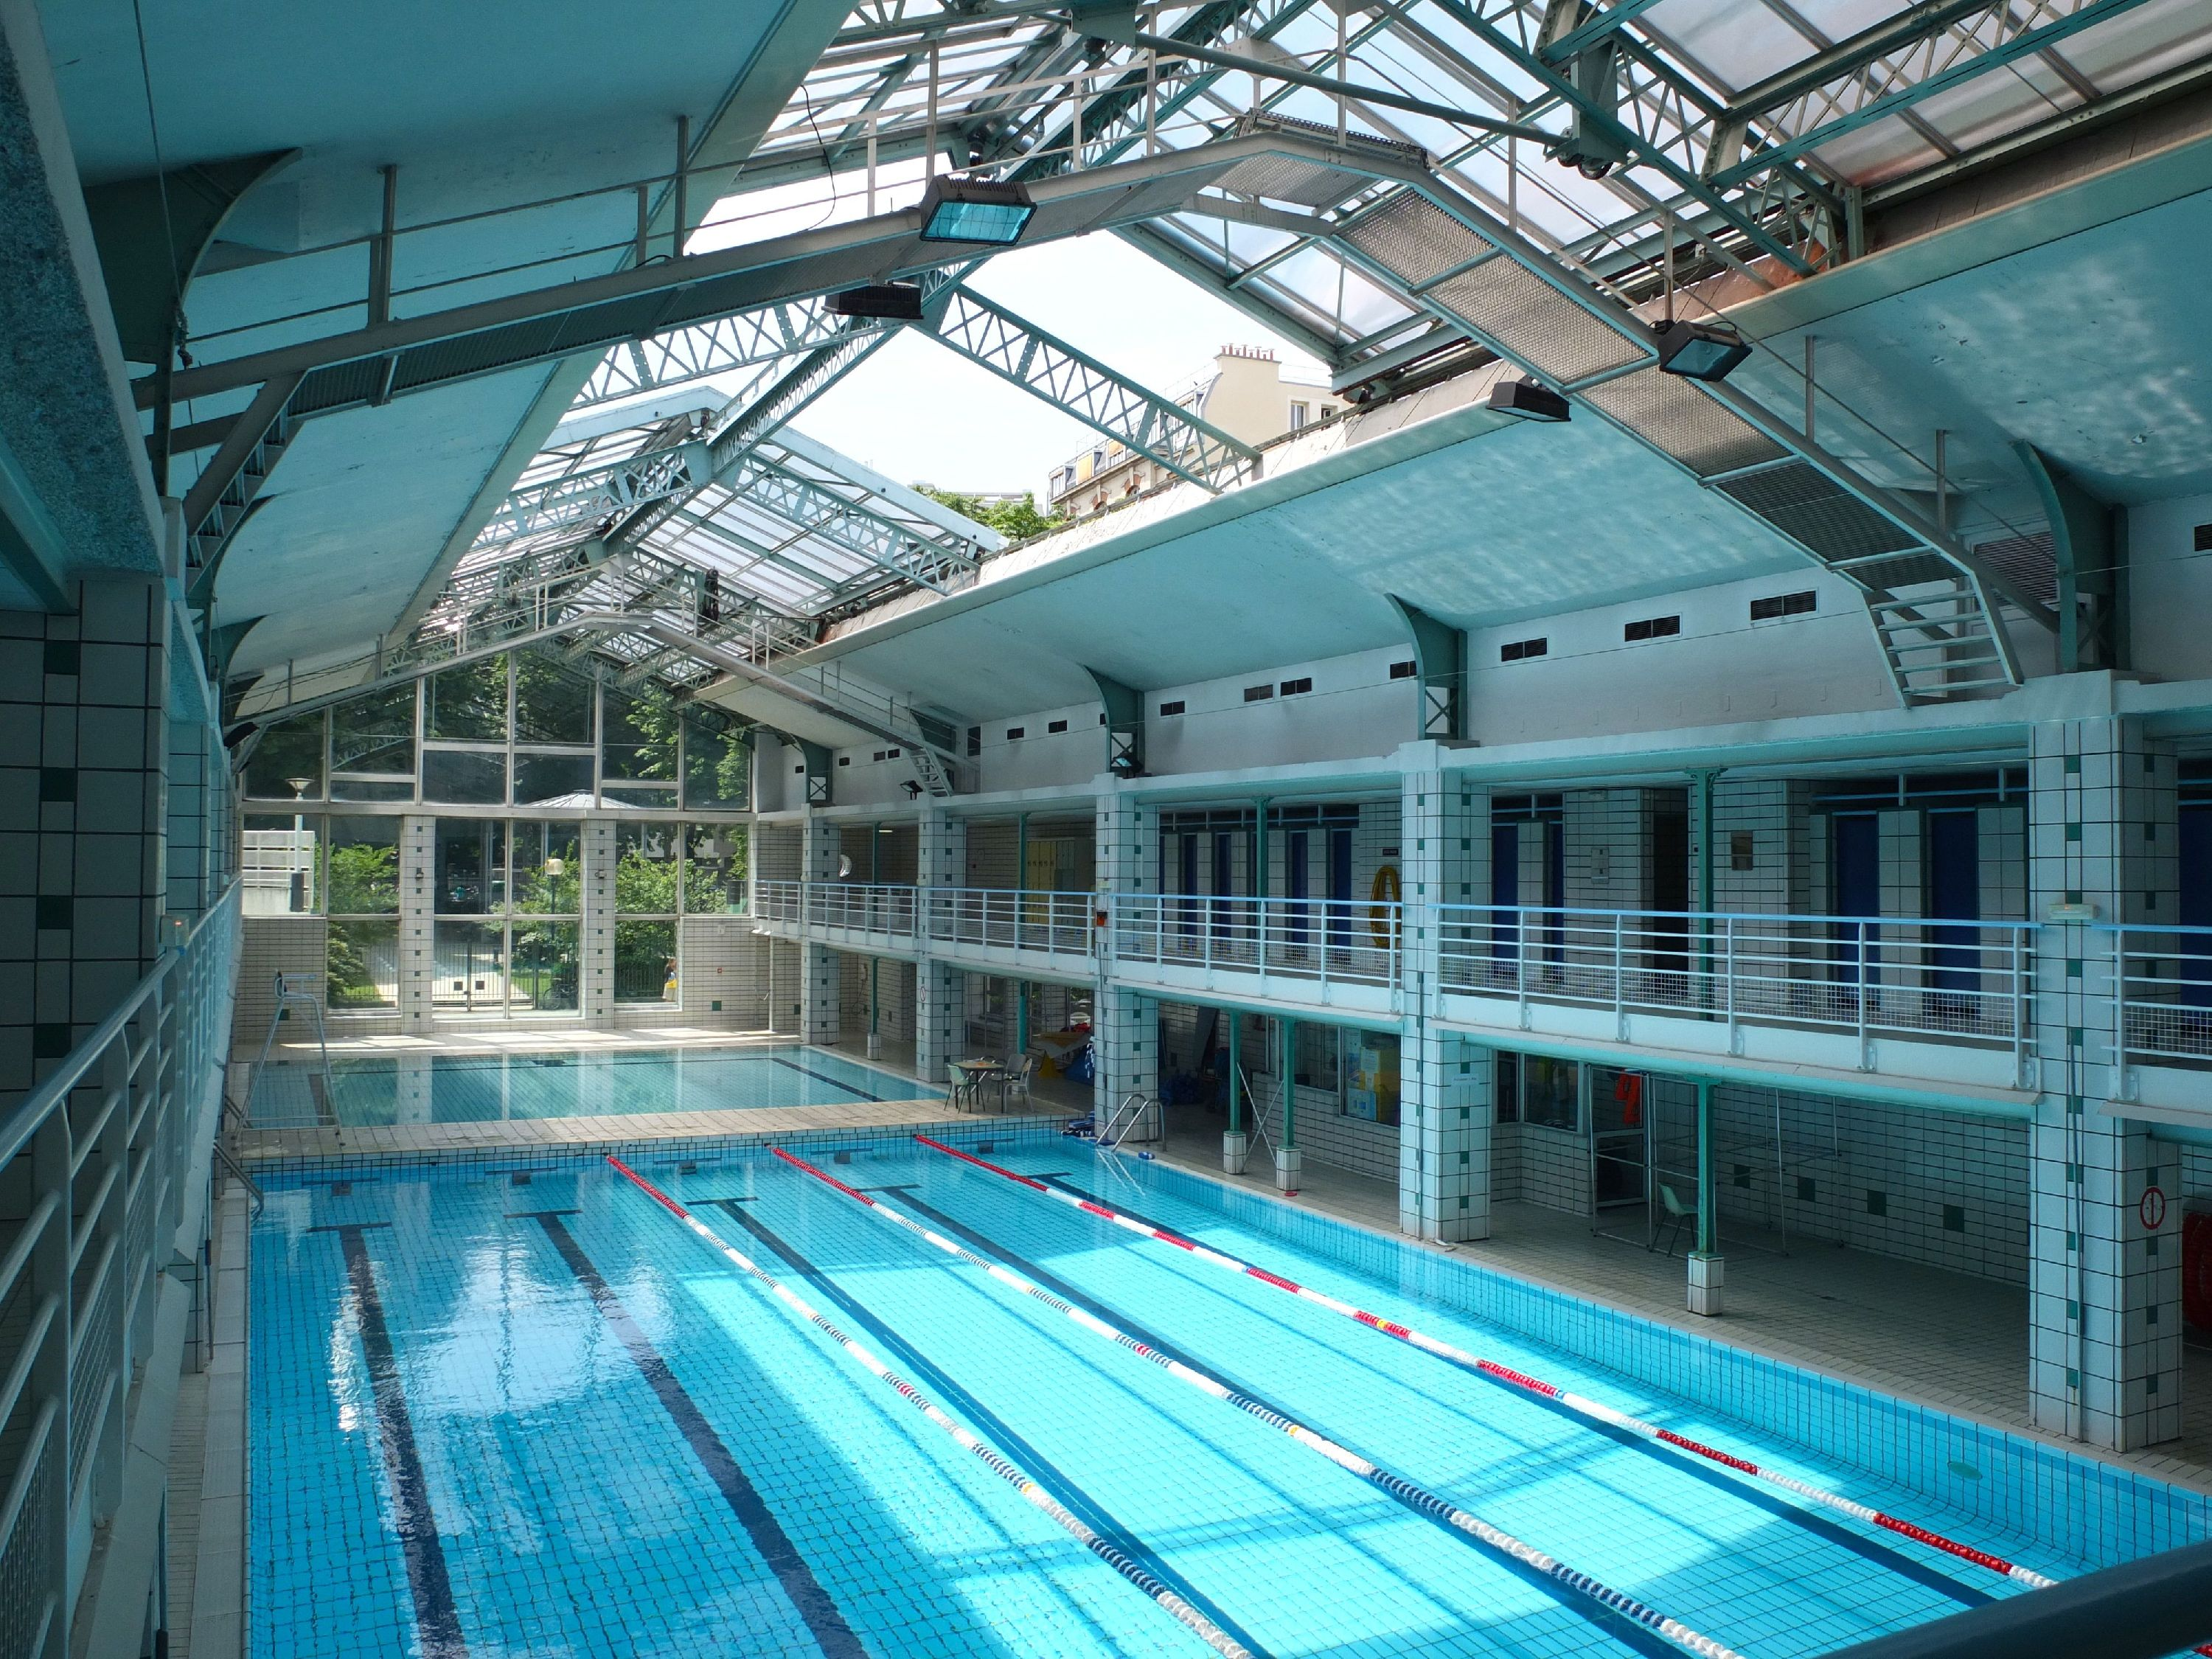 Piscines top 10 des piscines pour nager paris cet t for Piscine publique